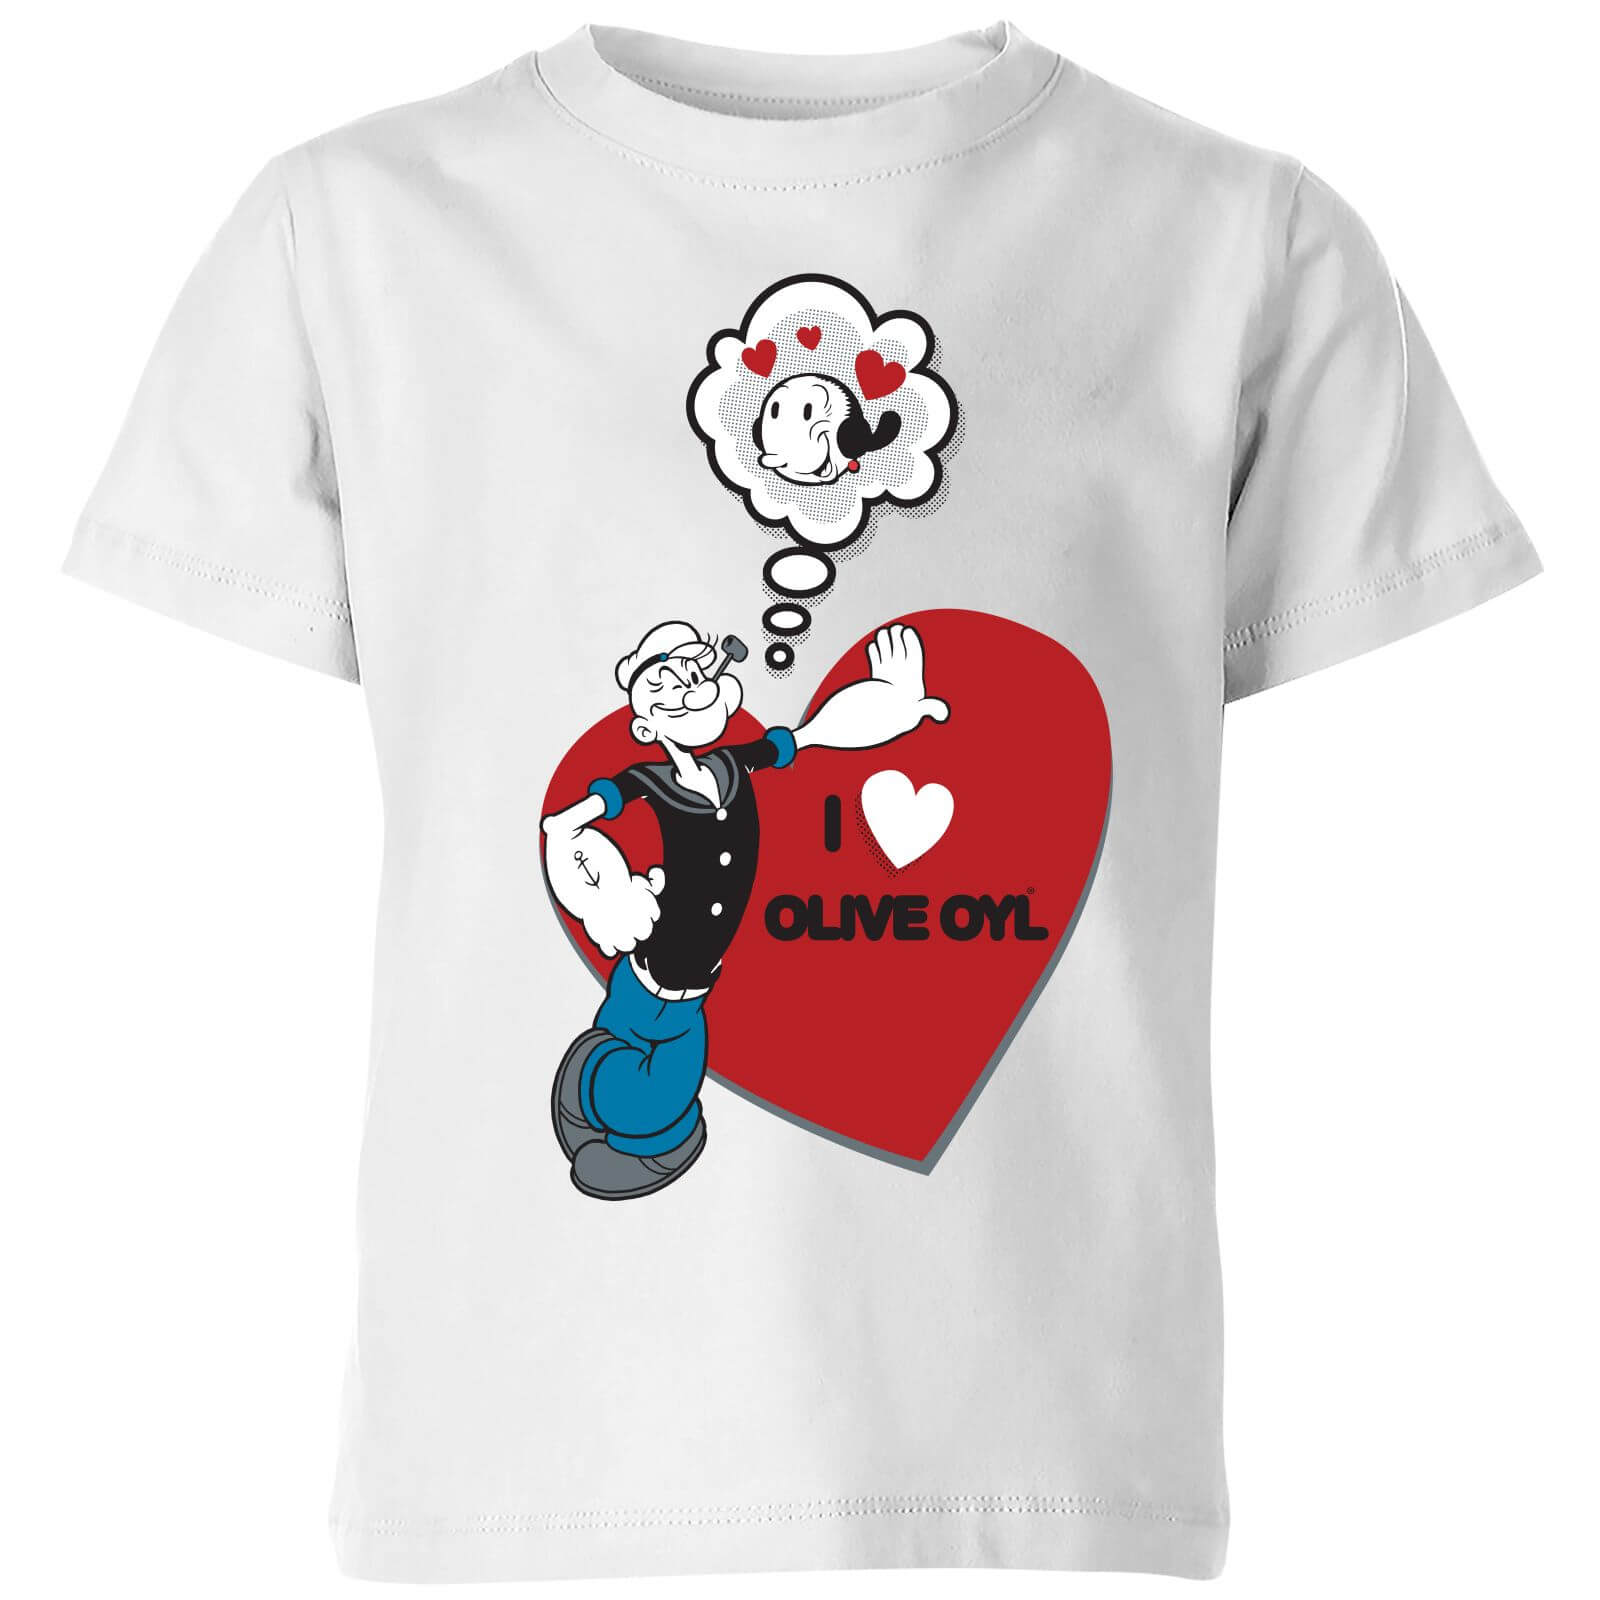 Popeye I Love Olive Oyl Kids' T-Shirt - White